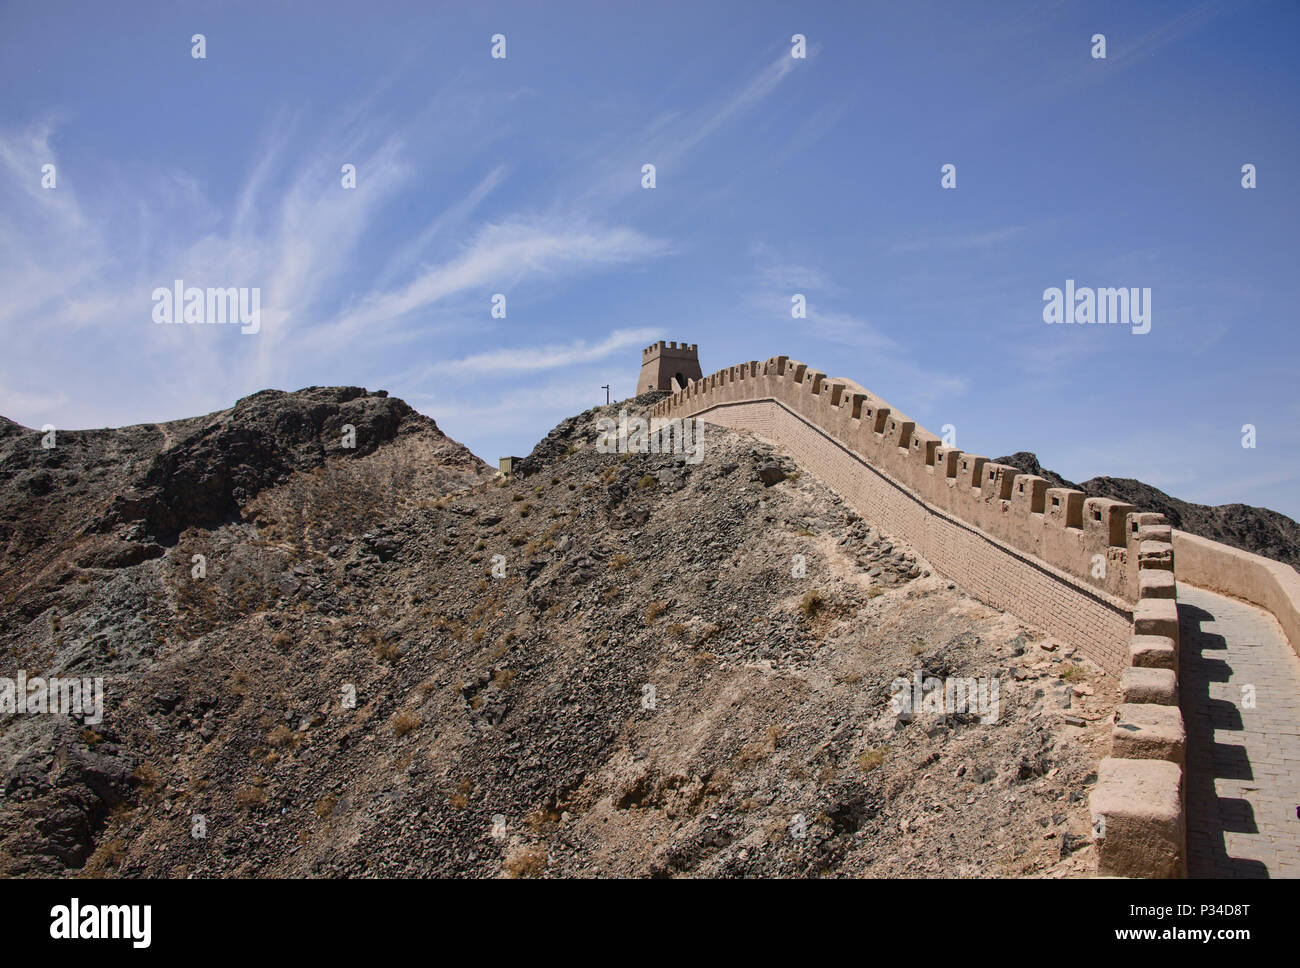 Surplombant la Grande Muraille, Jiayuguan, Gansu, Chine Photo Stock